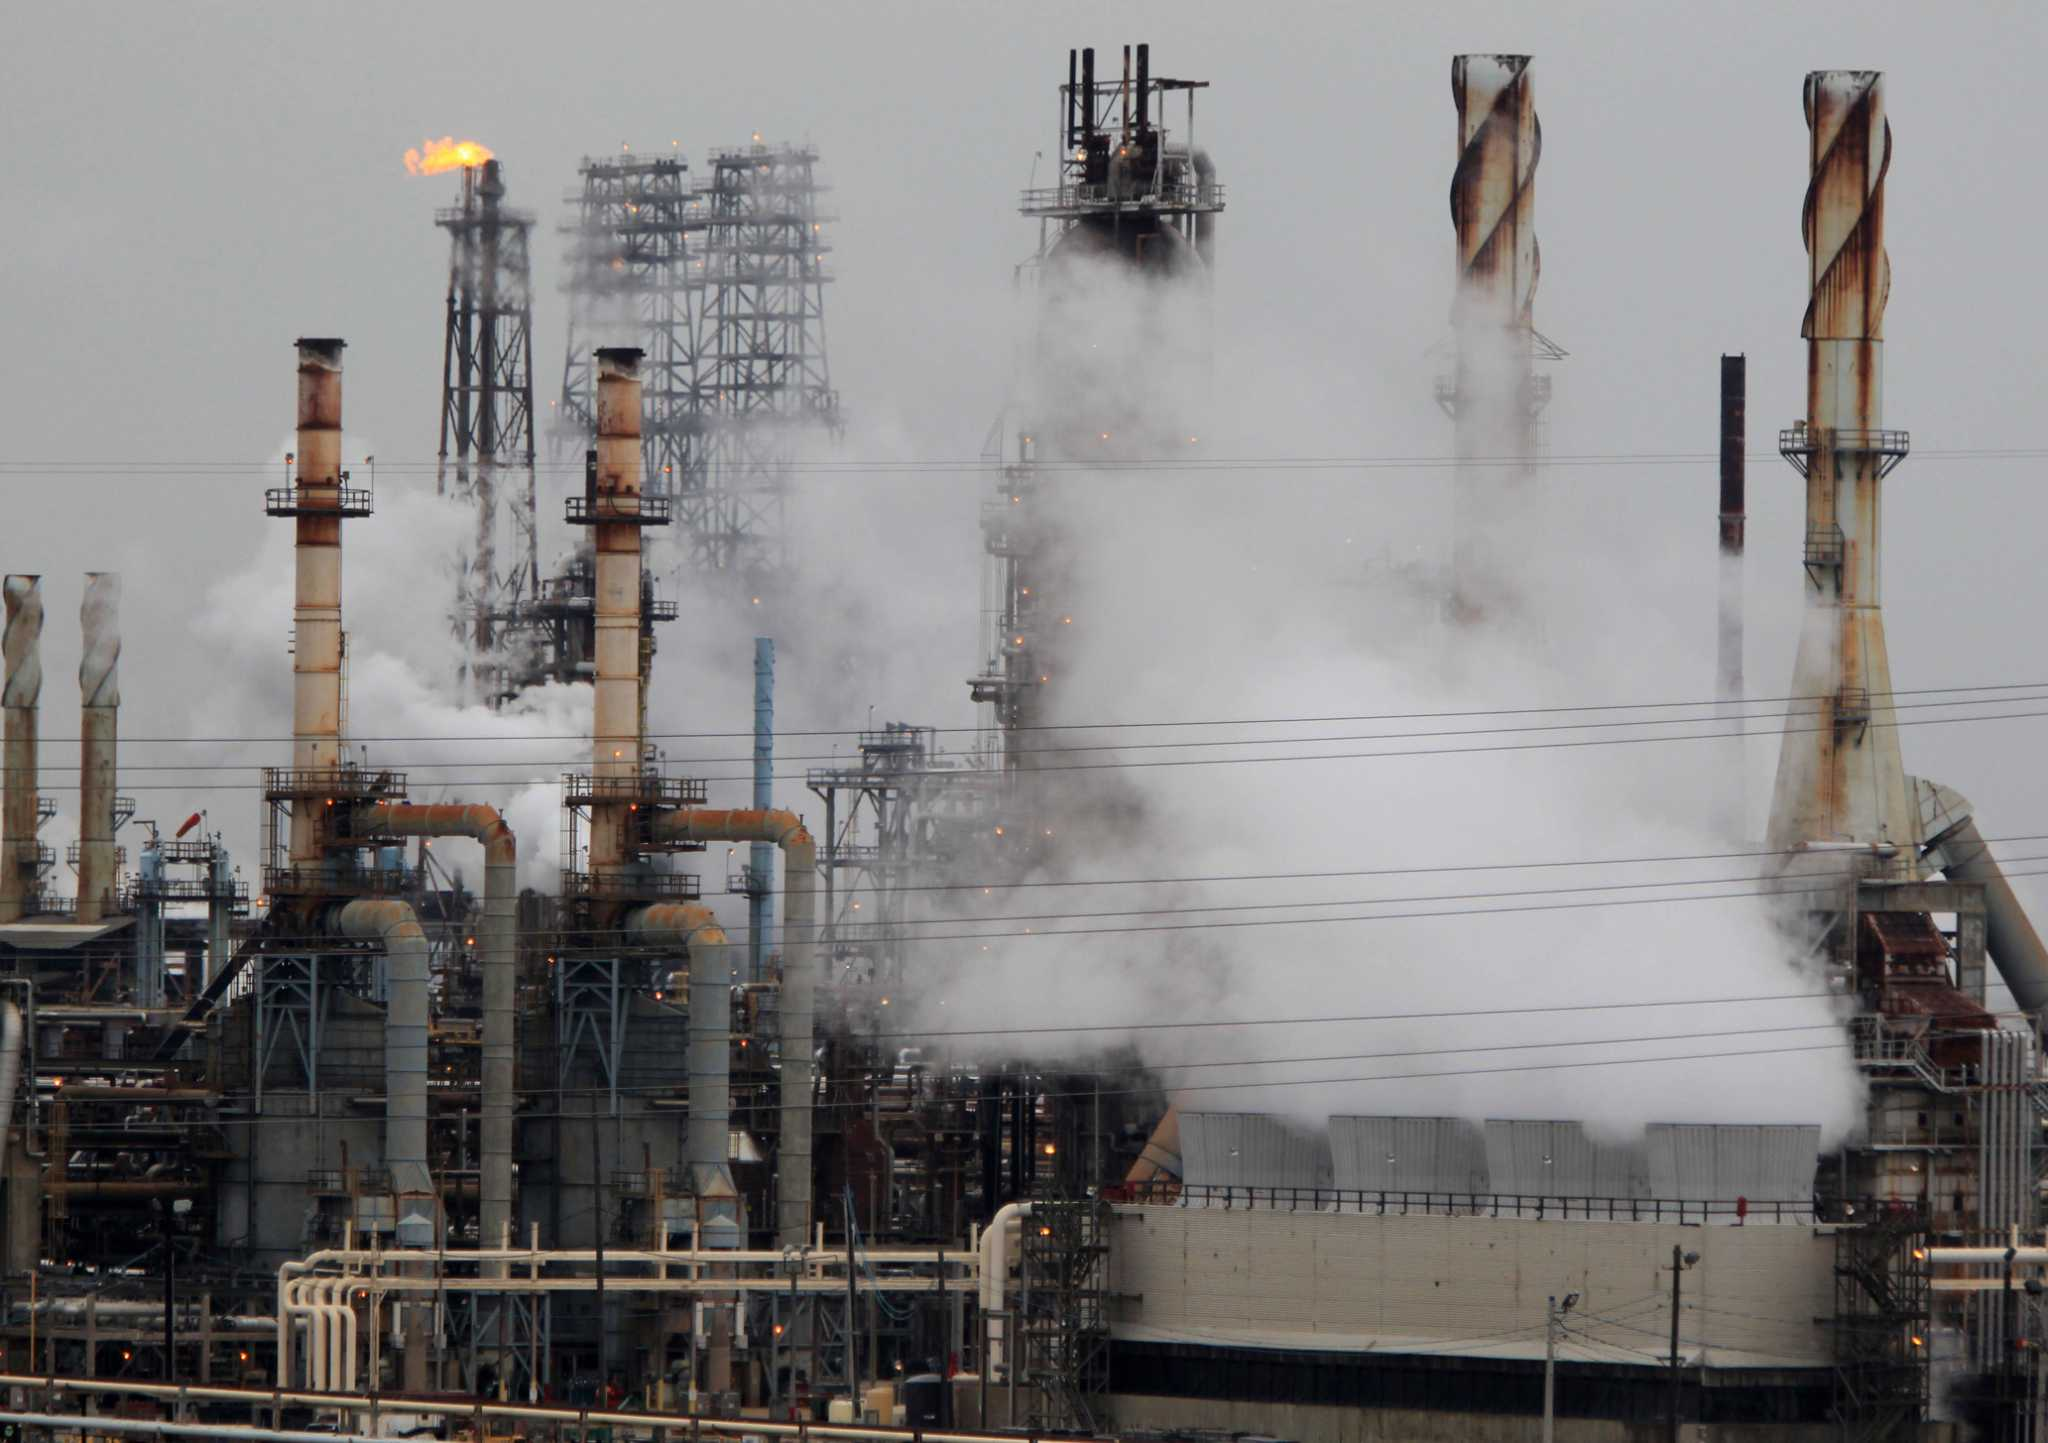 Exxon ordered to pay $20 million in air pollution suit